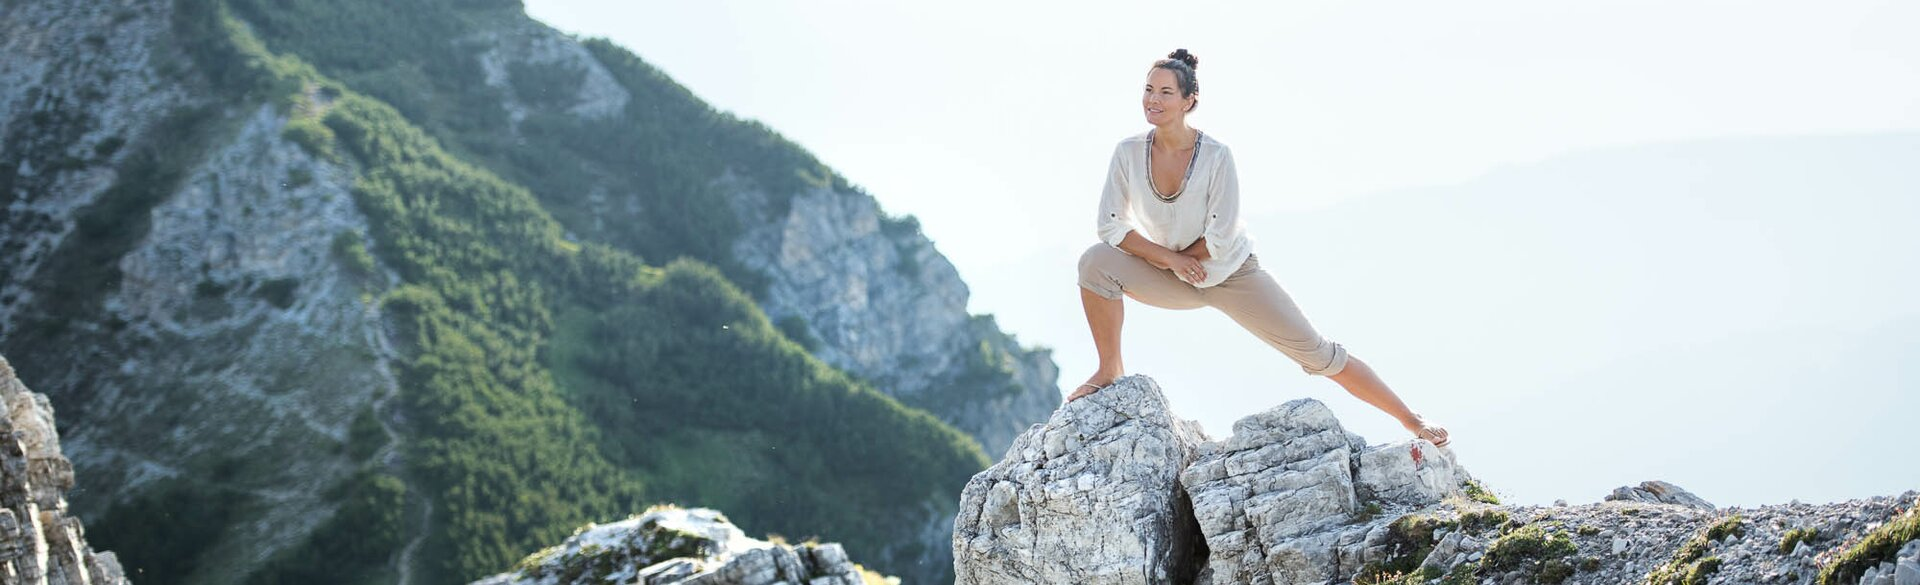 Yoga in the Mountains | Best Wellnesshotels in South Tyrol & Austria